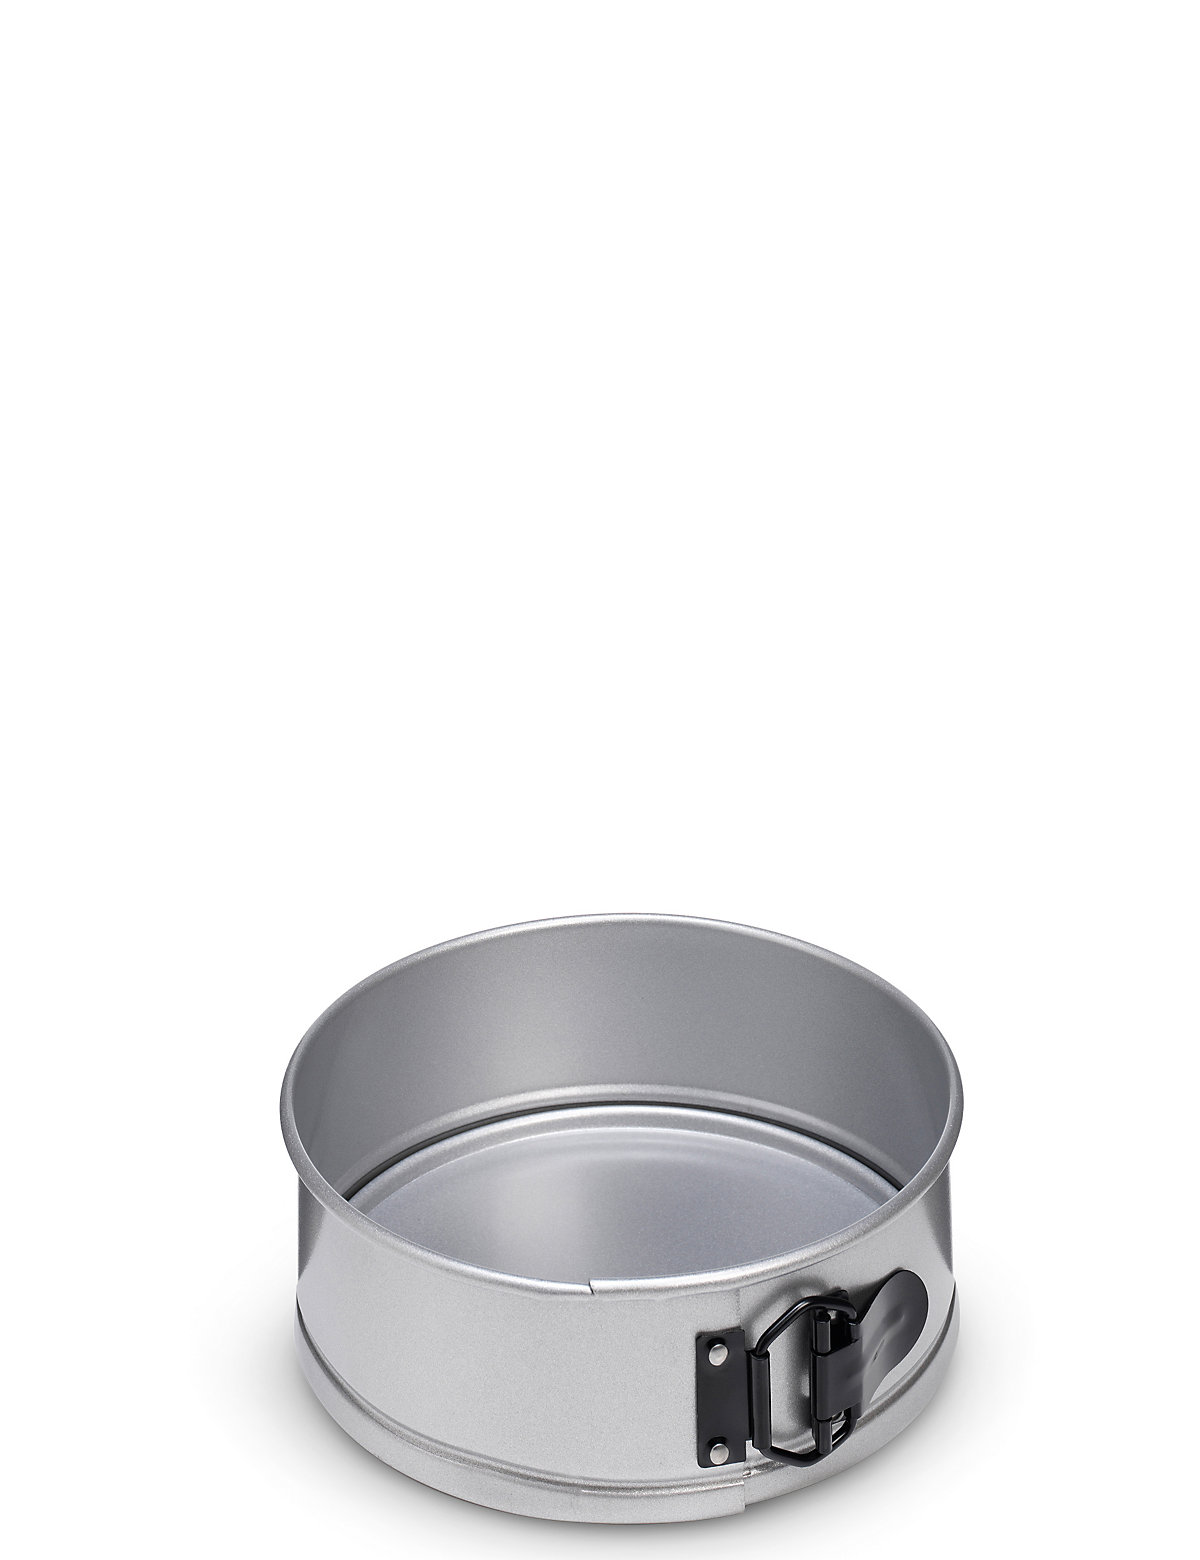 Image of 20cm Non-Stick Spring Form Cake Tin